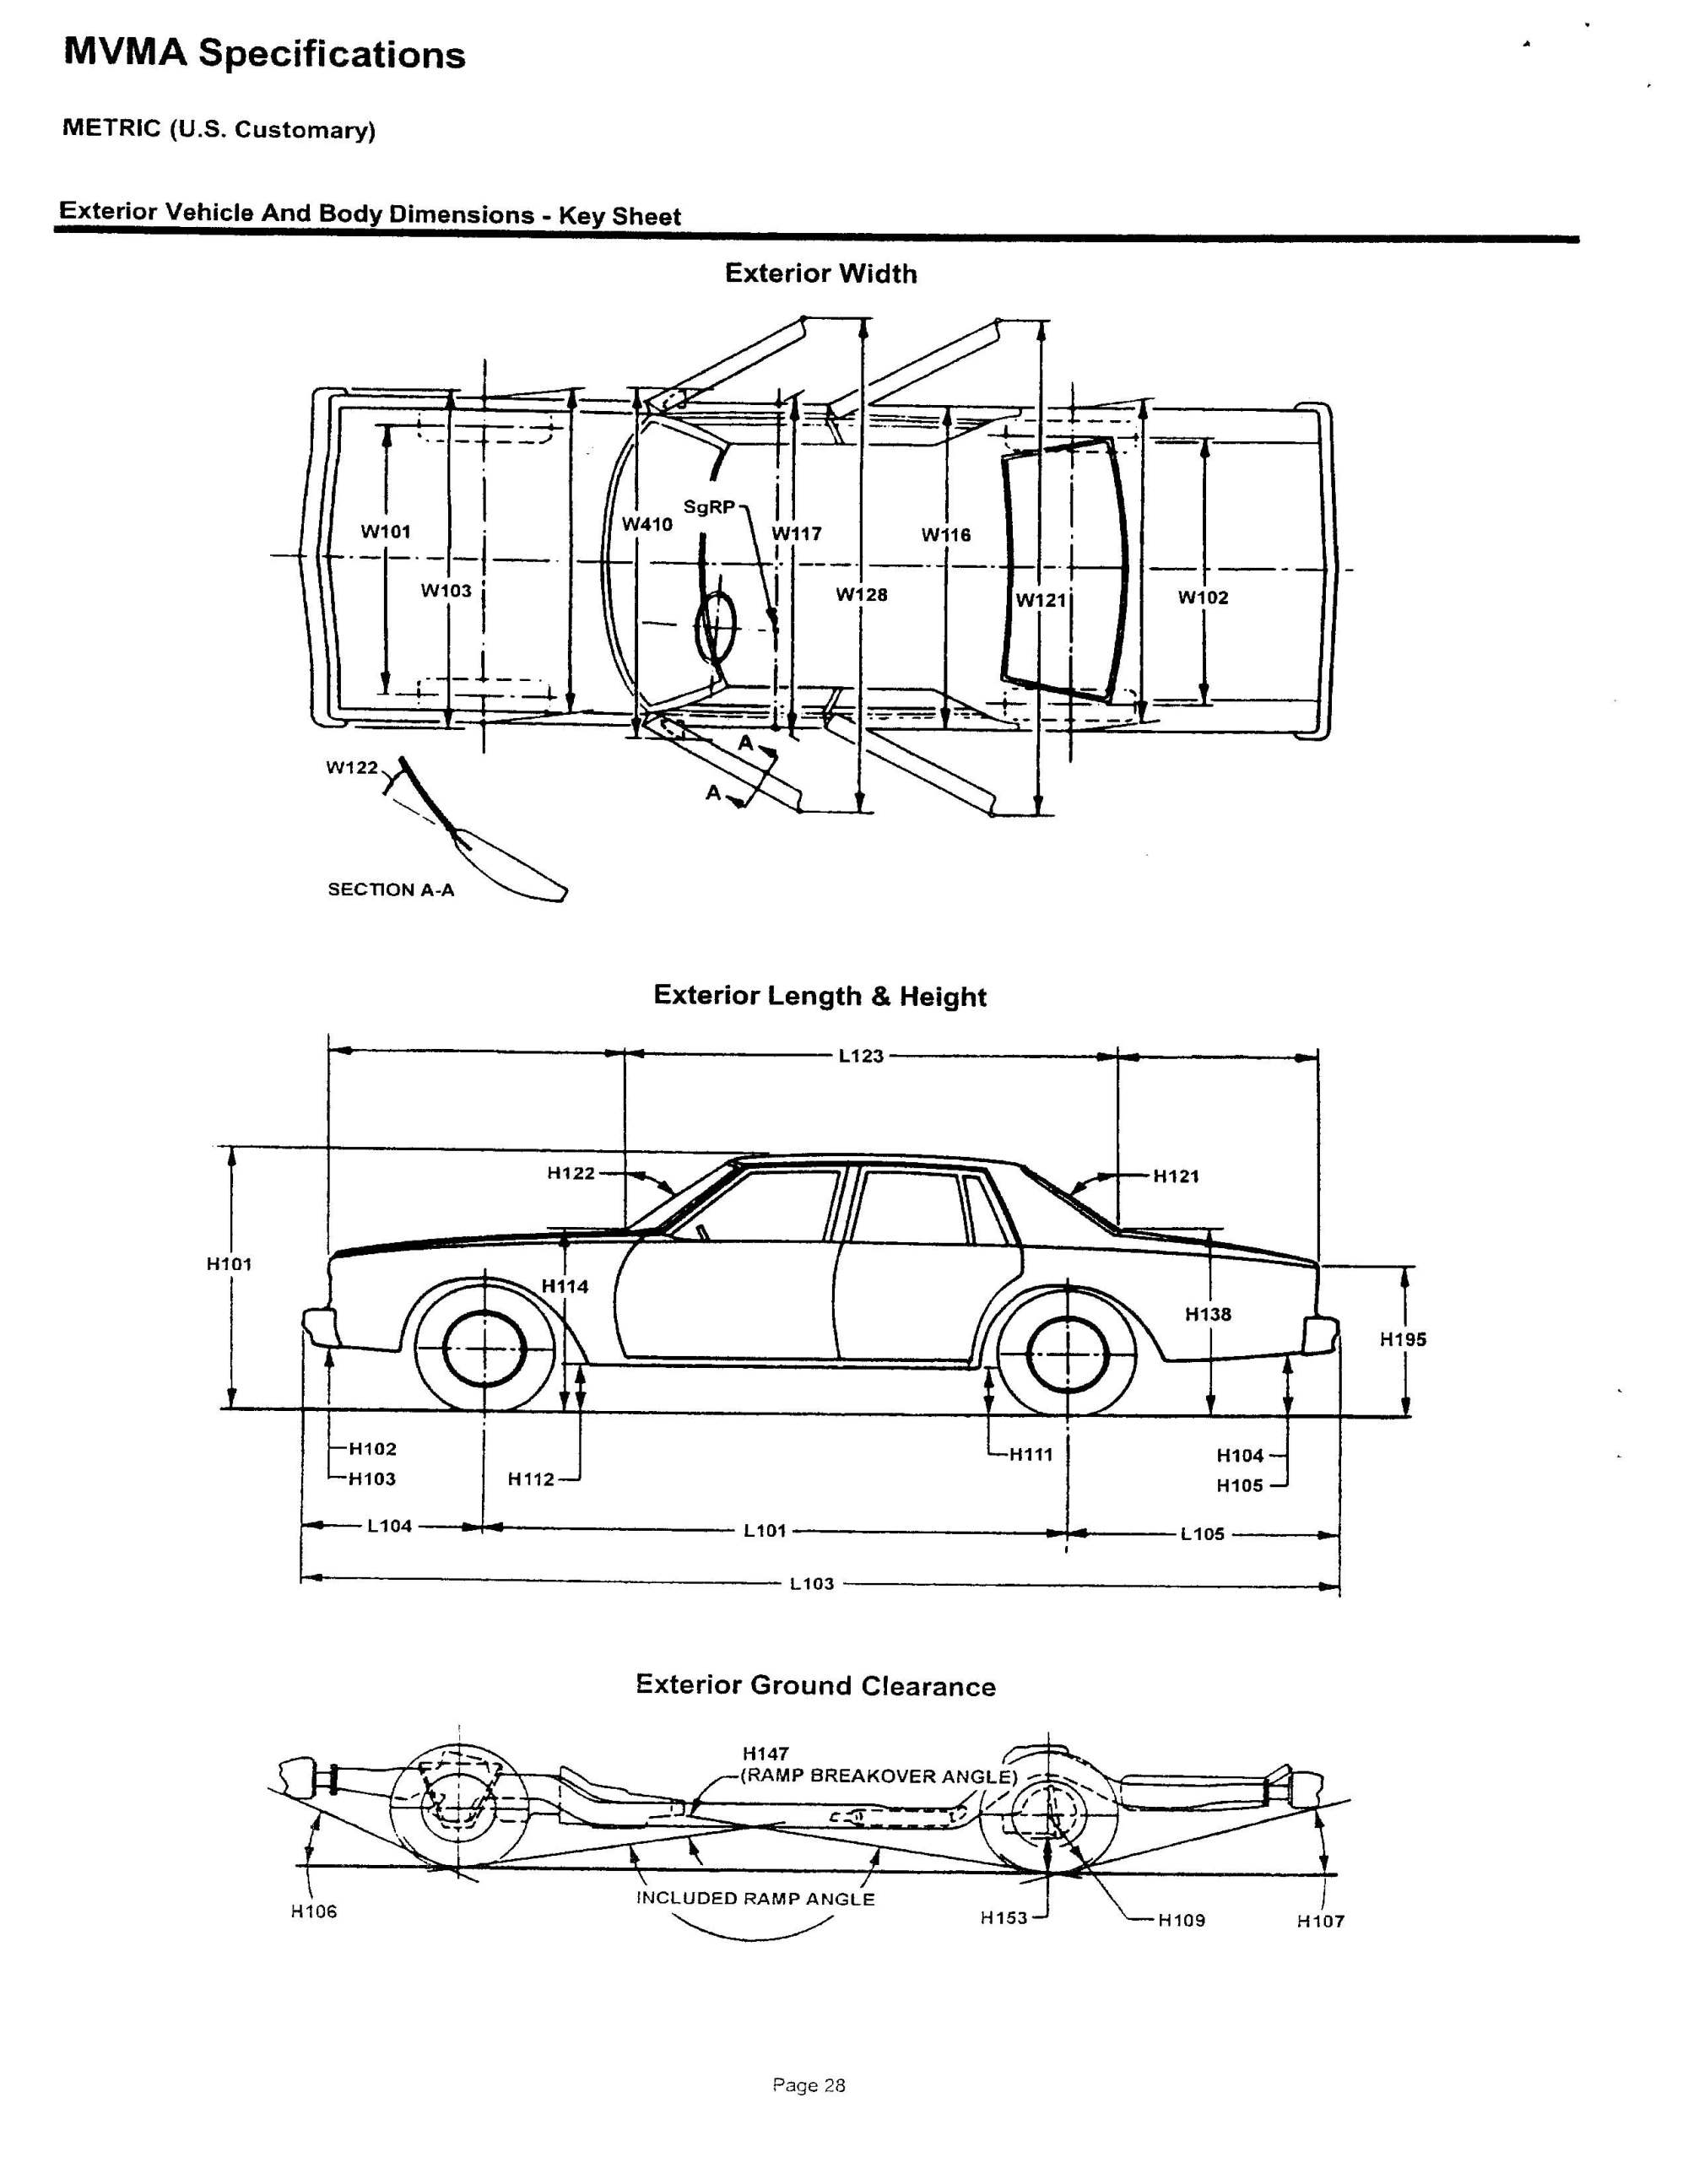 hight resolution of restraint system 2007 lexus es350 exterior vehicle and body dimensions